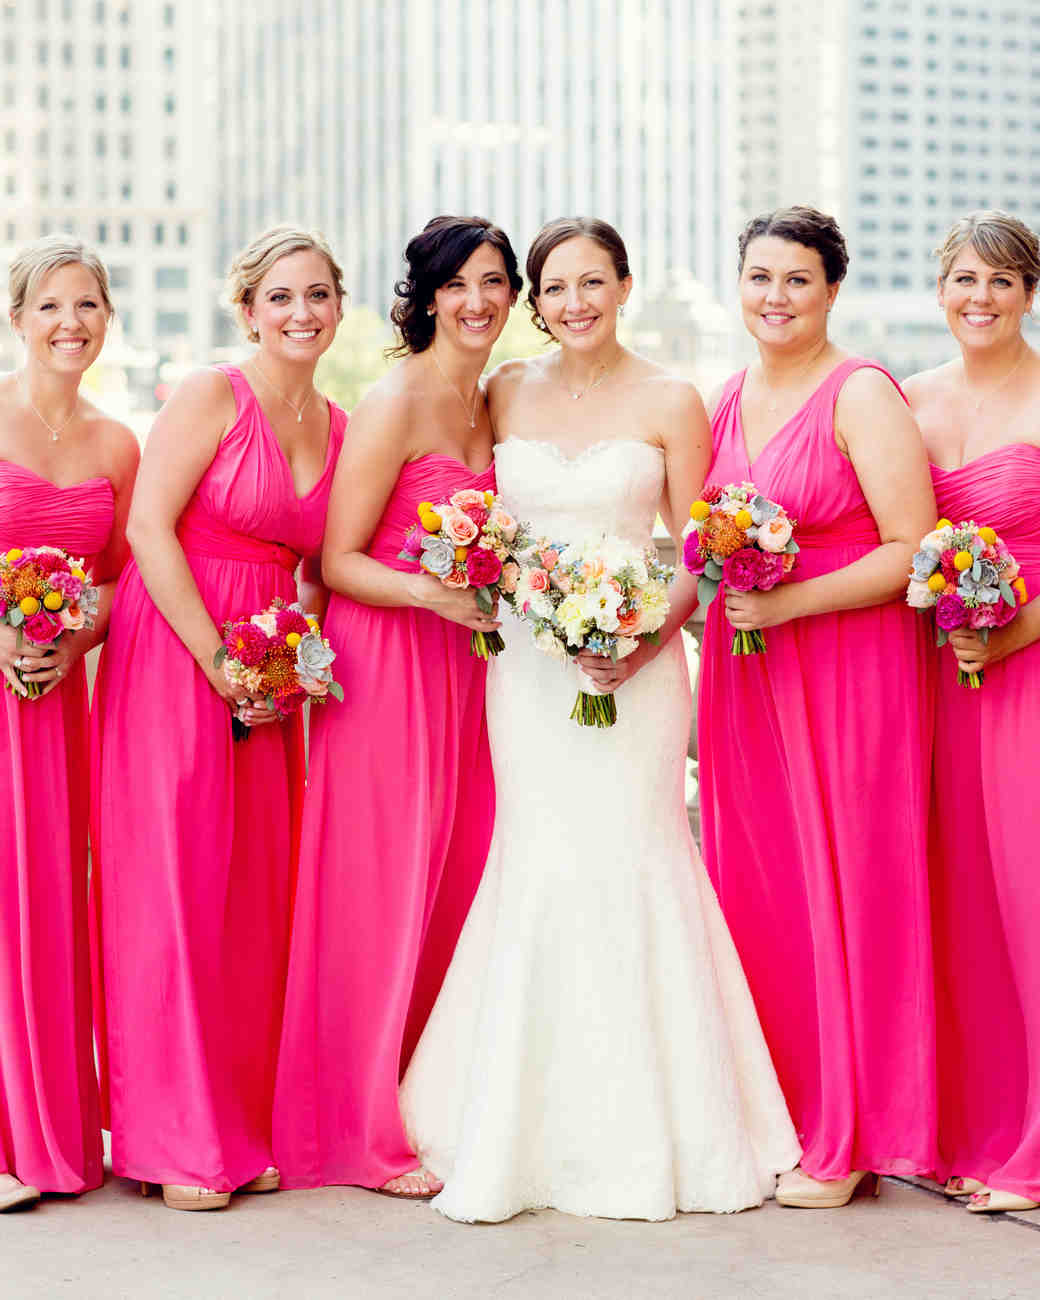 christina-jimmy-wedding-bridesmaids-8033.jpg